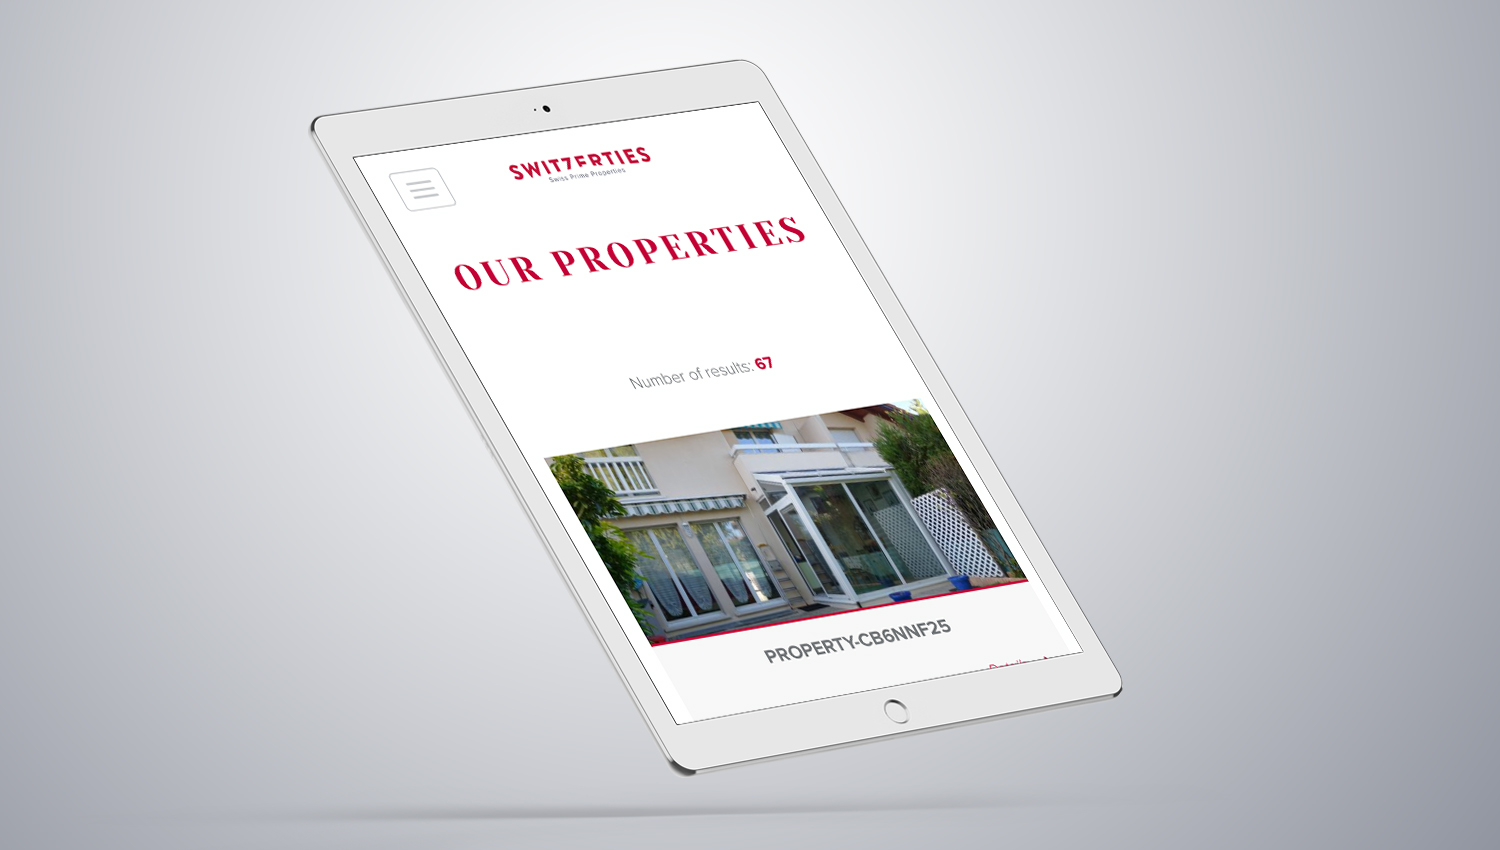 Web design laptop view for Switzerties 2 by 8 Ways